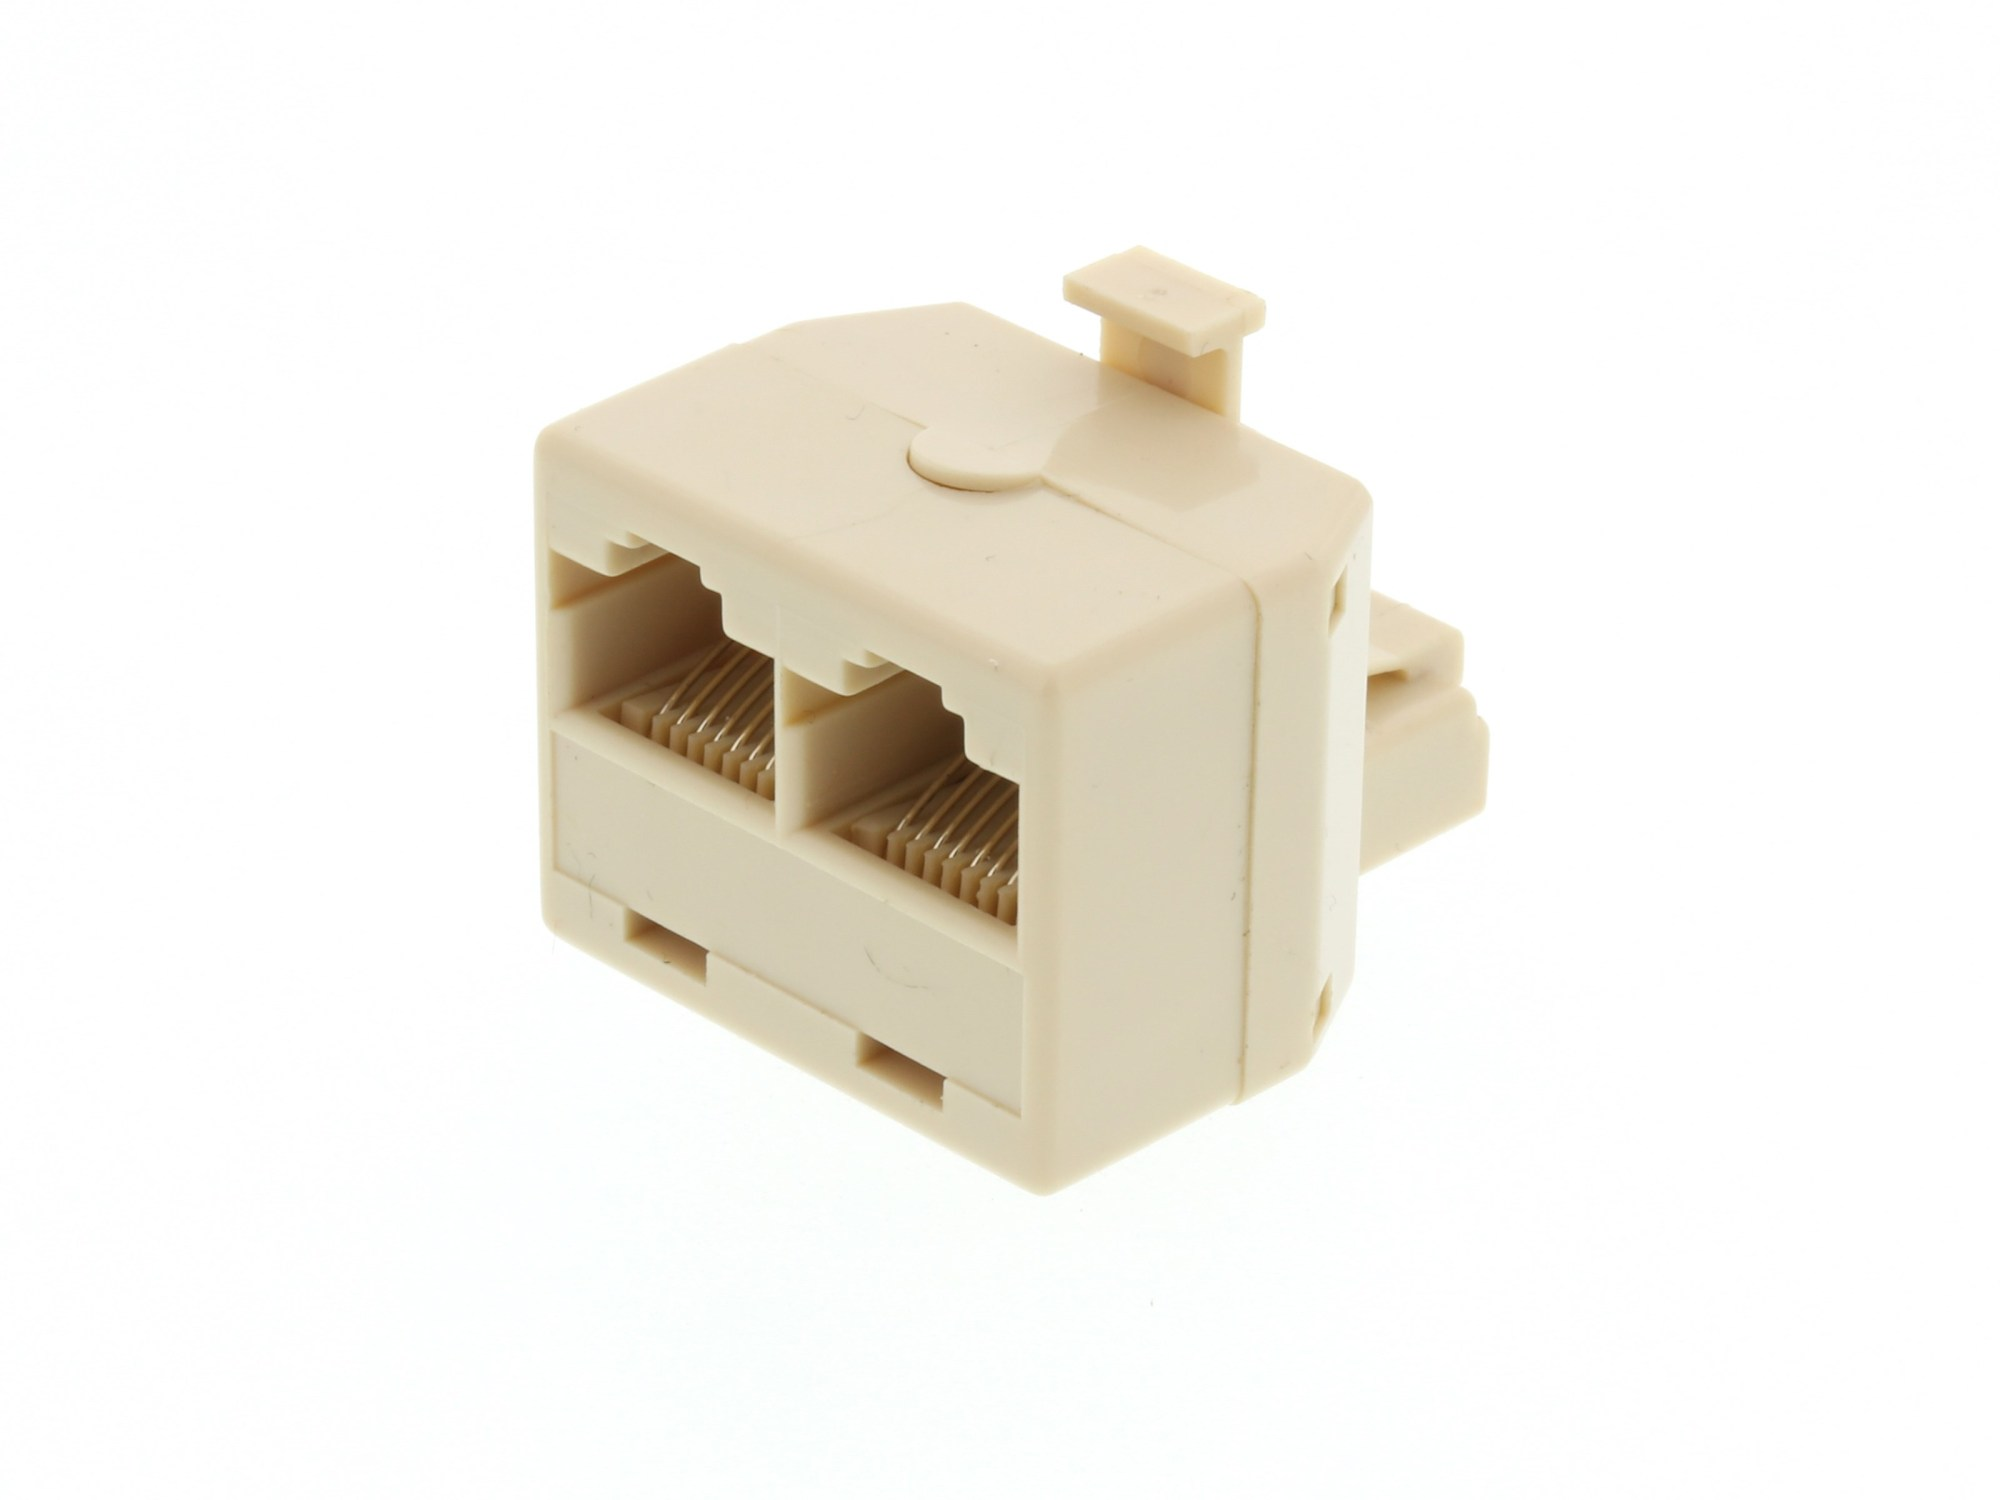 hight resolution of modular voice t adapter 1 male to 2 female rj45 8p8c for 8 wire mix picture